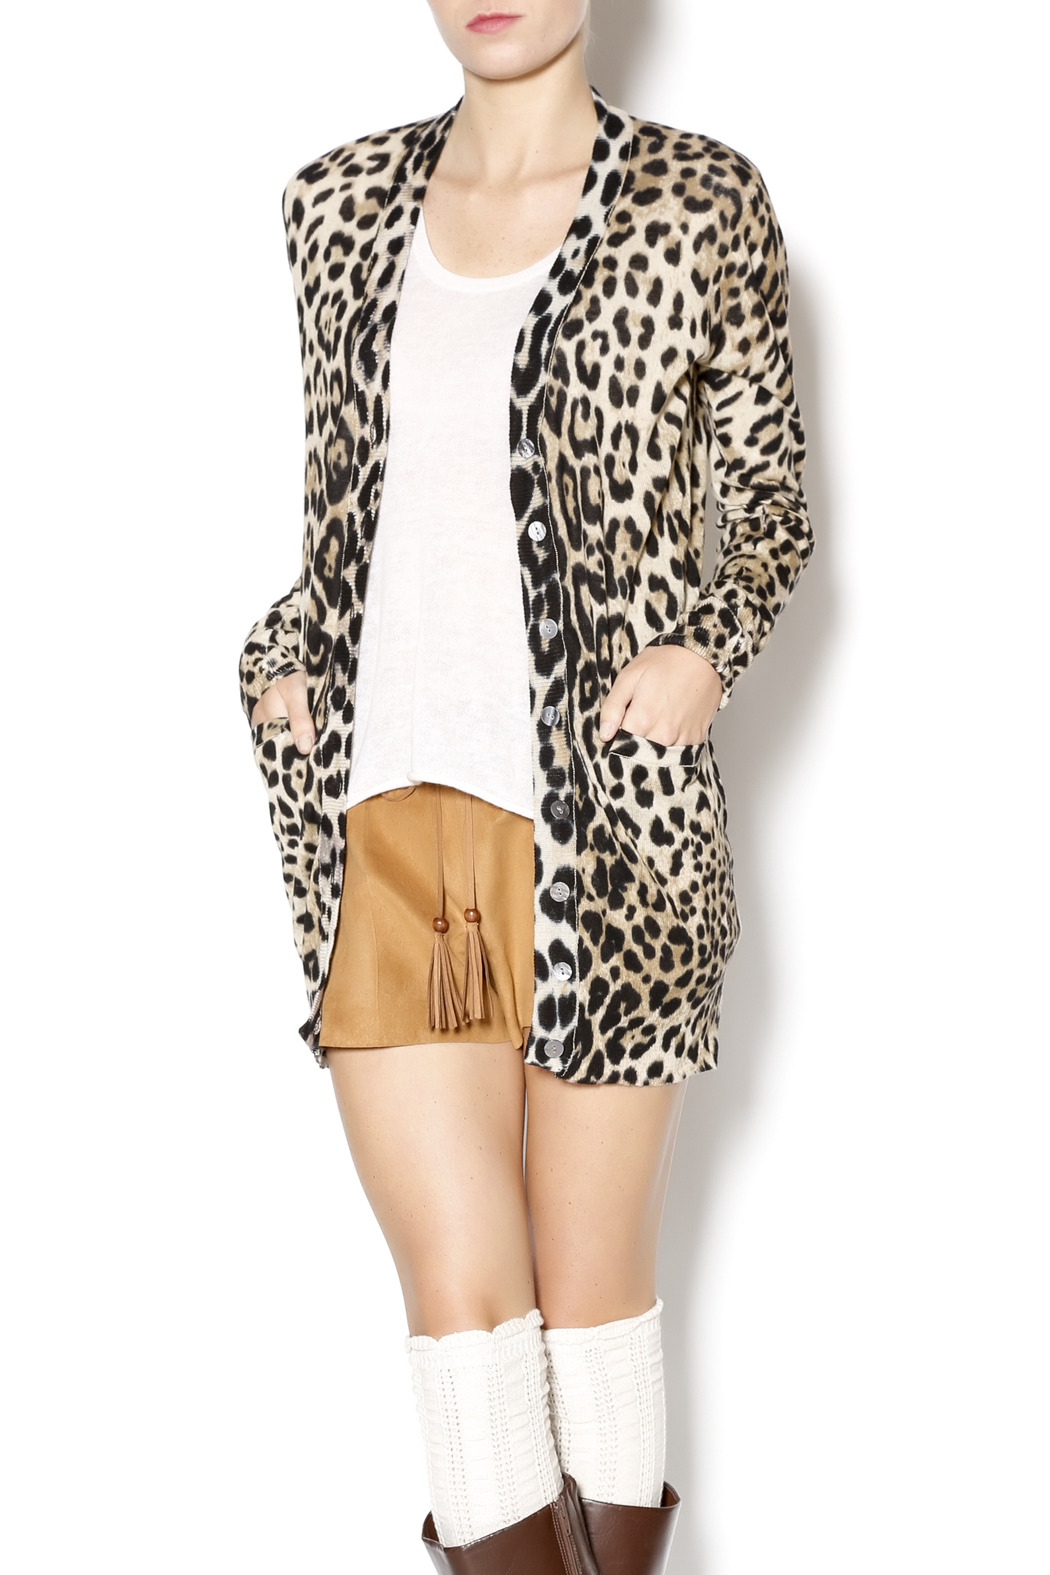 Ellison Leopard Print Cardigan from Texas by It's Swice — Shoptiques